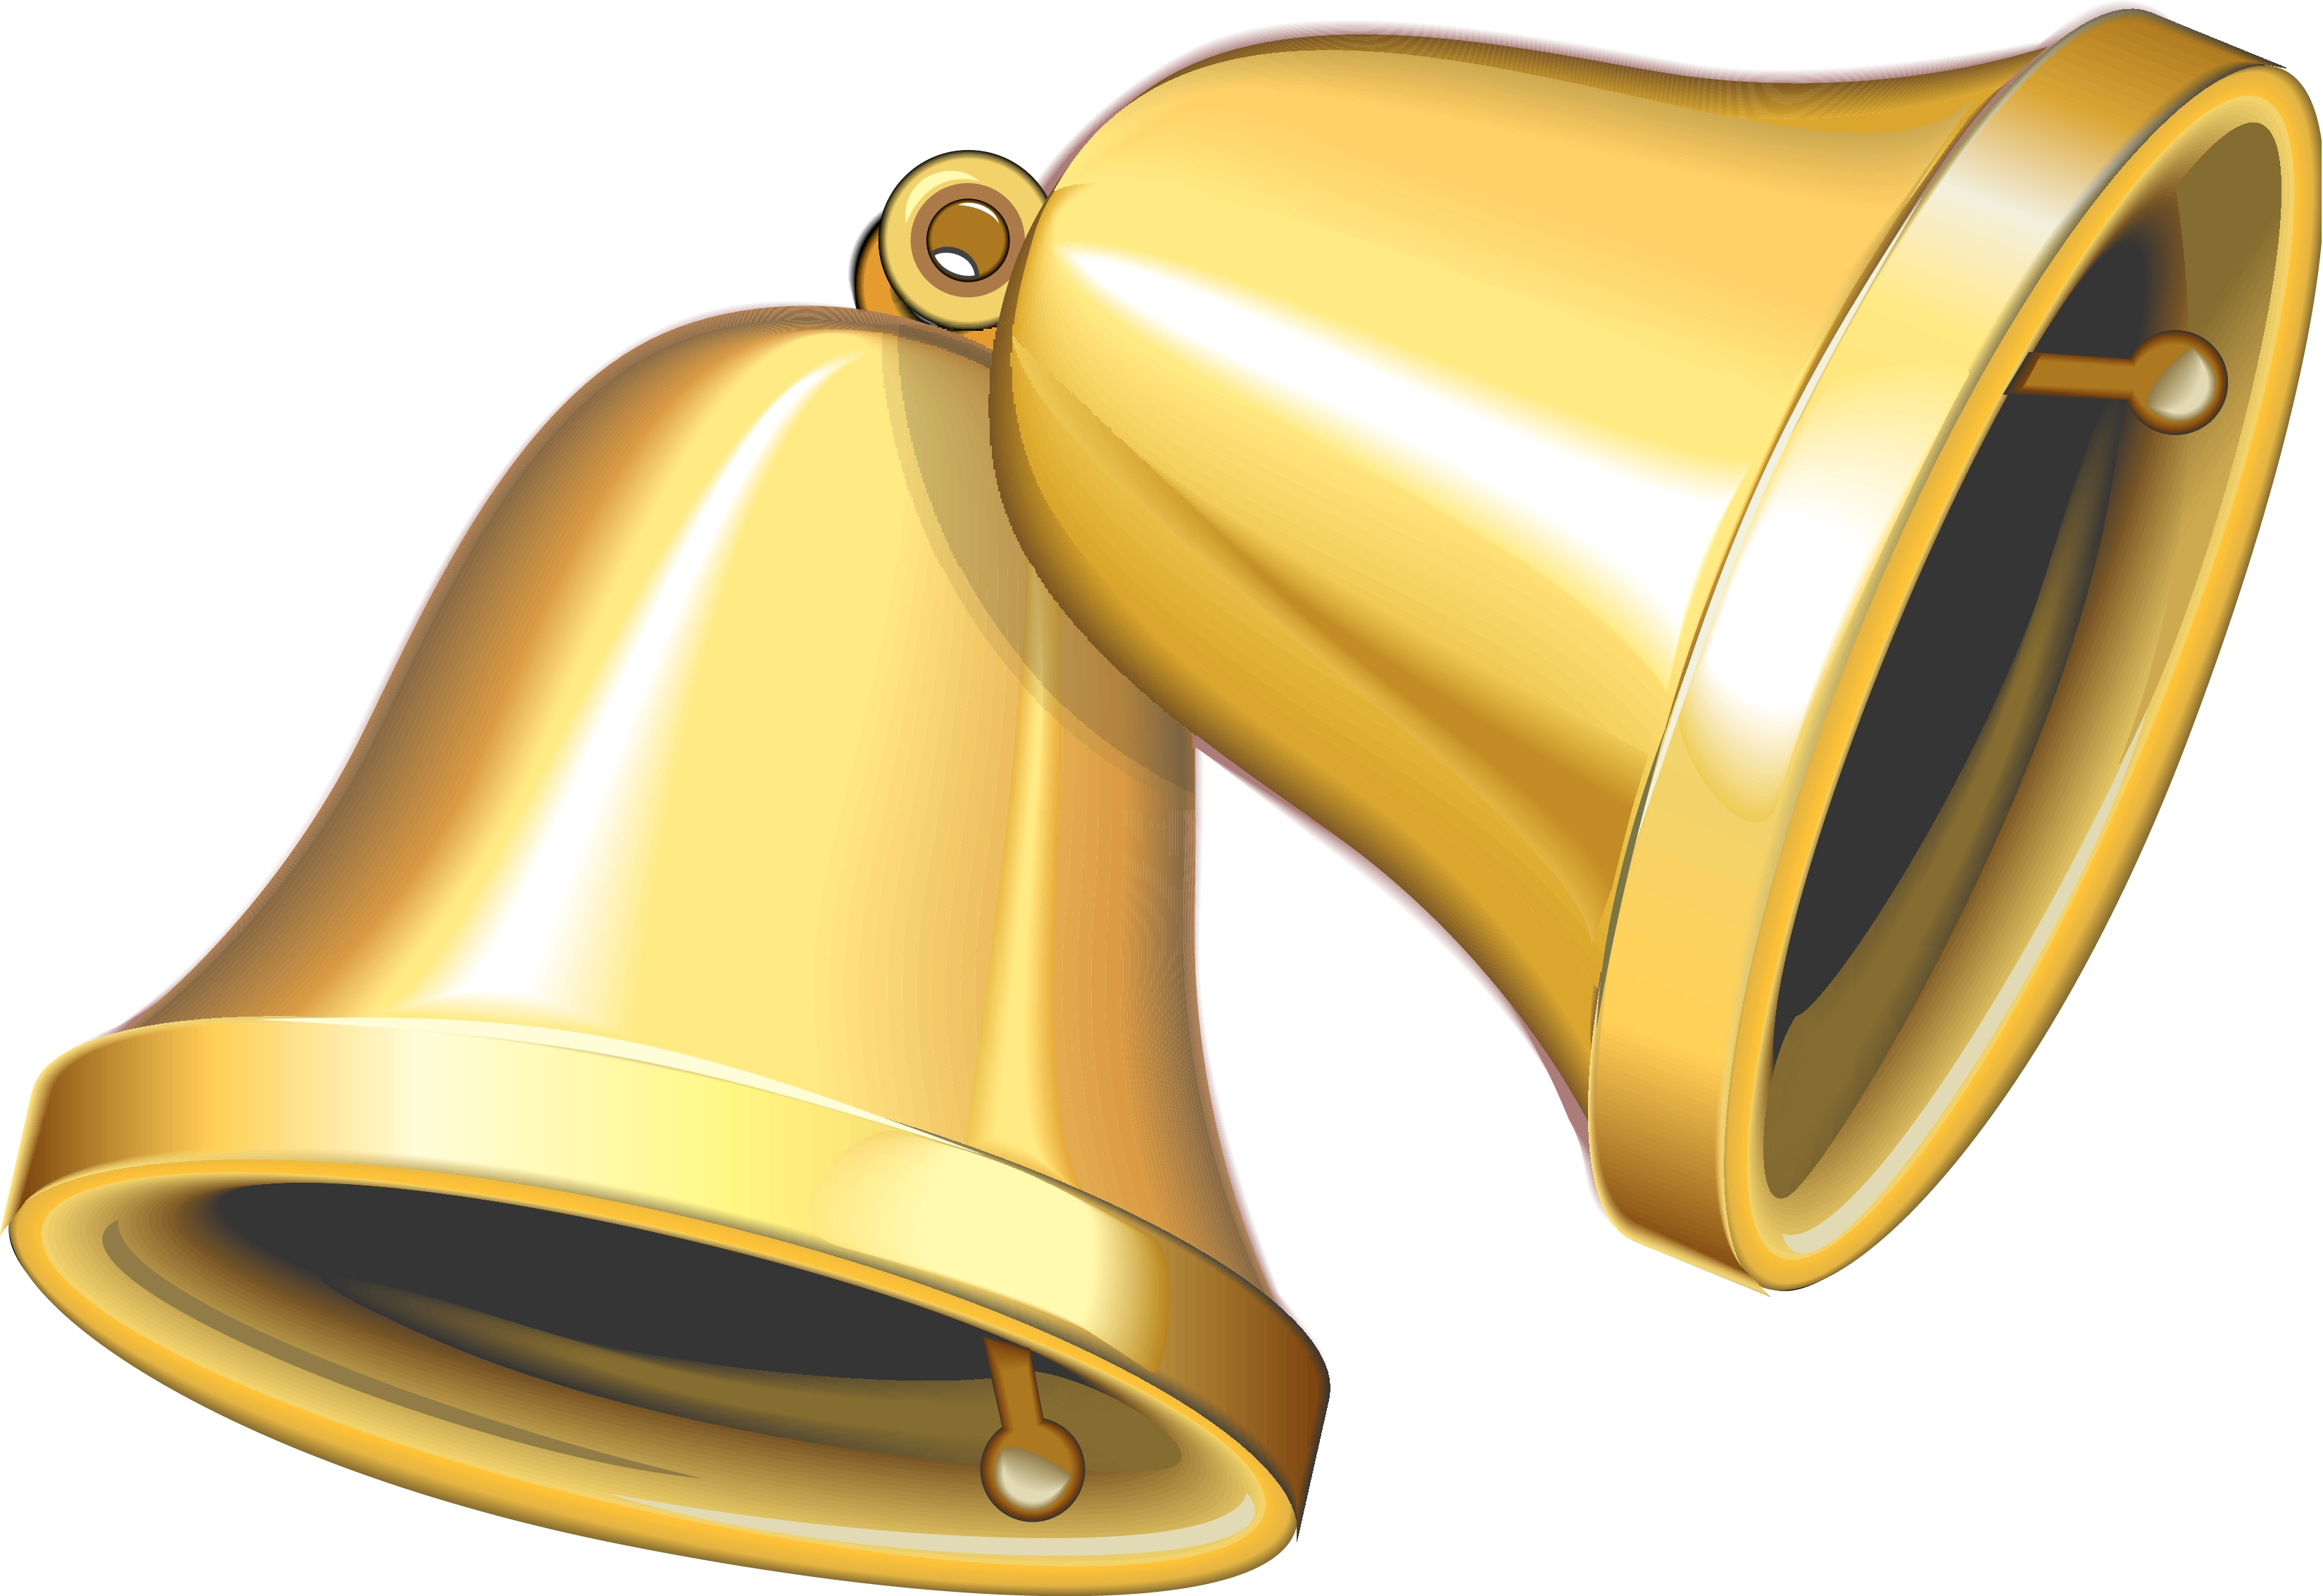 church bell ringing clipart clipart suggest free wedding ring clipart images wedding rings clipart free download